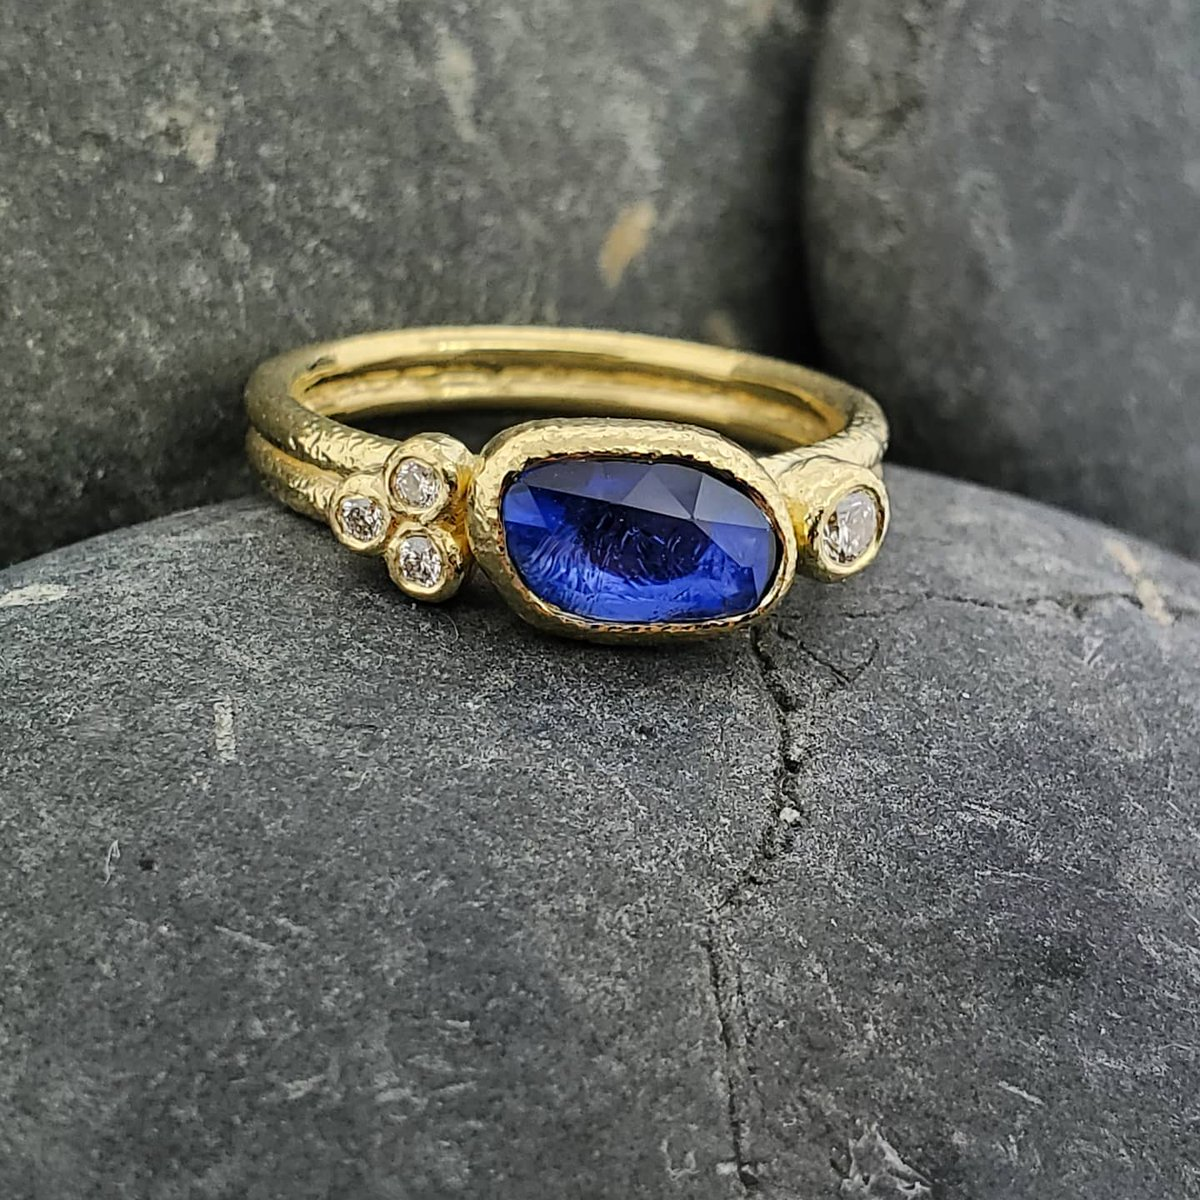 Bluest of blues, this rich free-form sapphire slice feels good surrounded by gold and diamonds. #sapphirering #ancientrings #sapphireengagementringpic.twitter.com/oY23BQ1Ns5